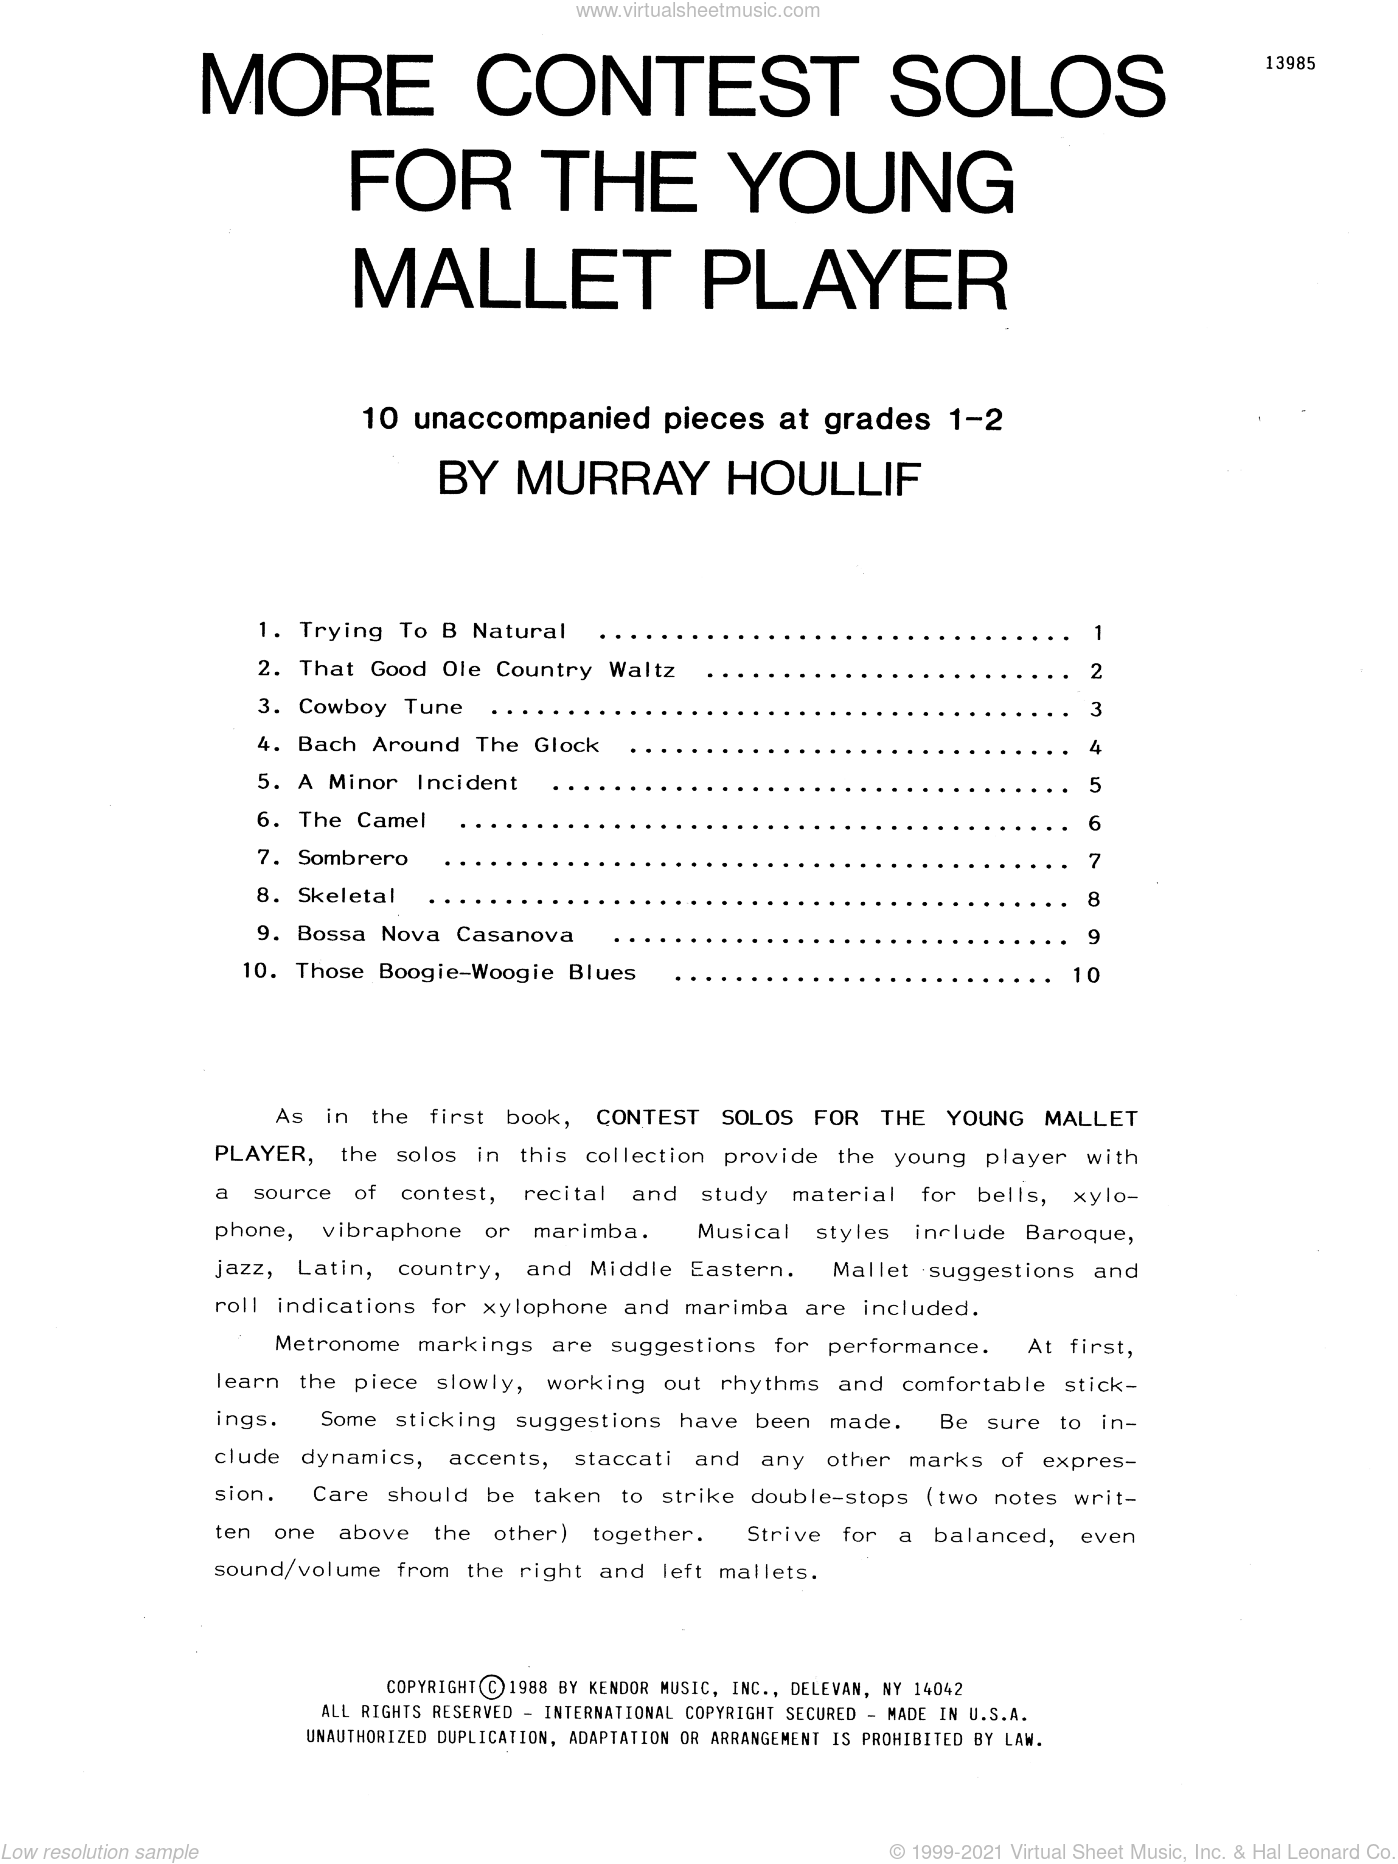 More Contest Solos For The Young Mallet Player sheet music for percussions by Houllif. Score Image Preview.